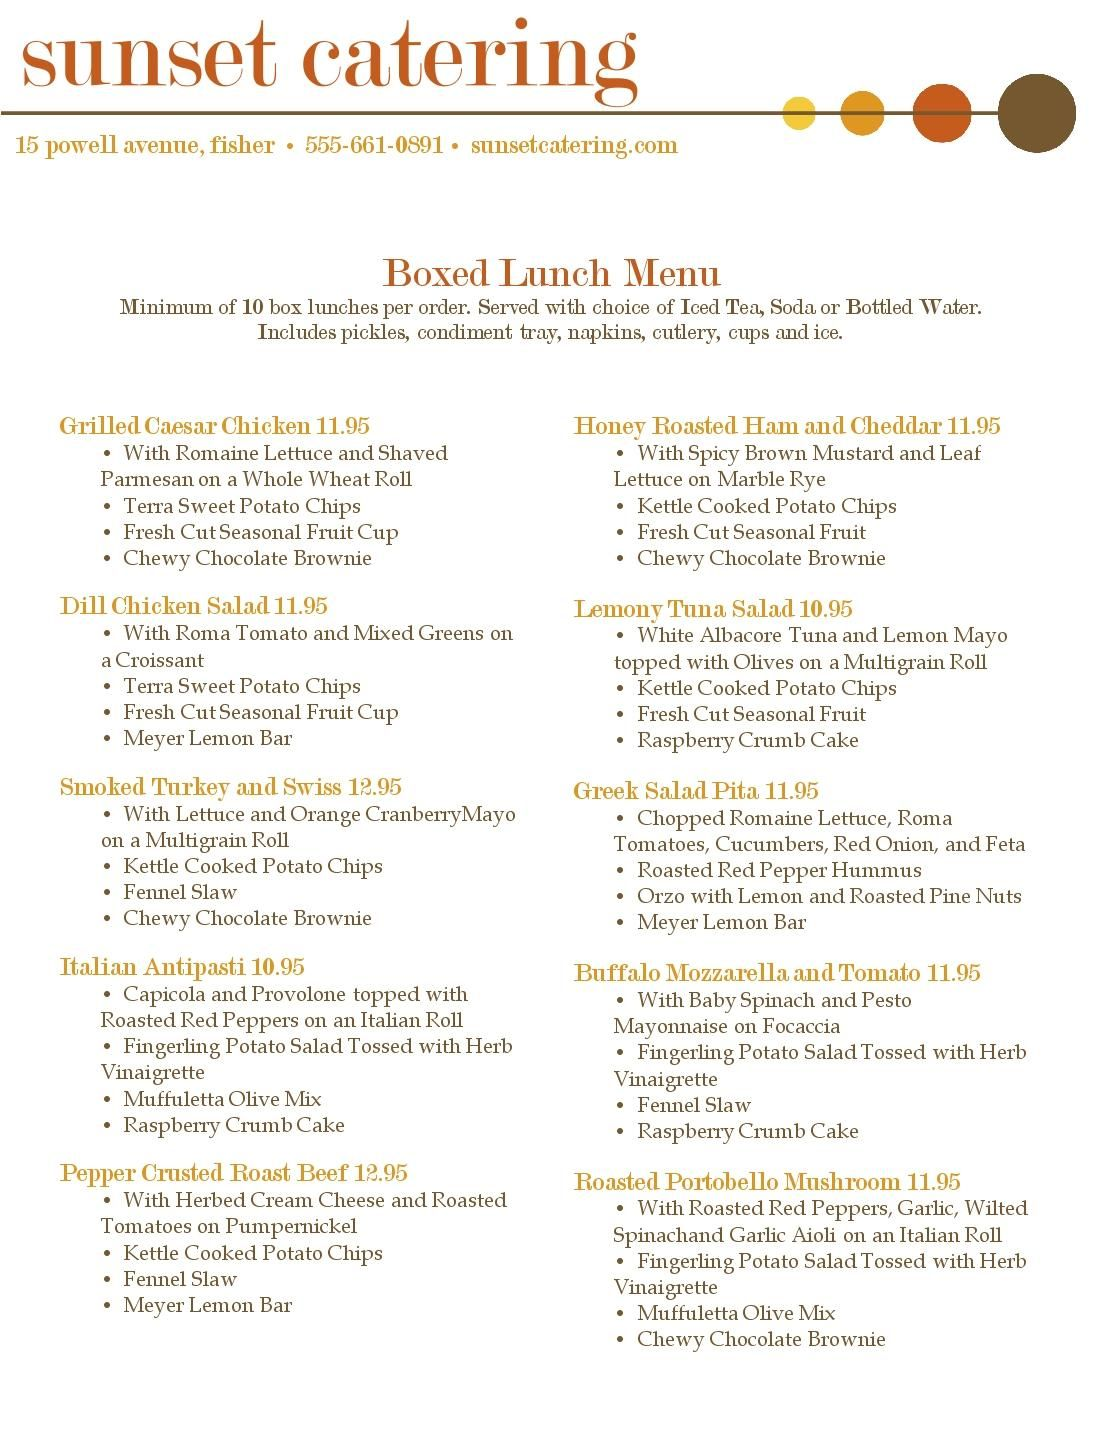 Box Lunch Menu Template  Menu For Box Lunch Catering   Pinteres